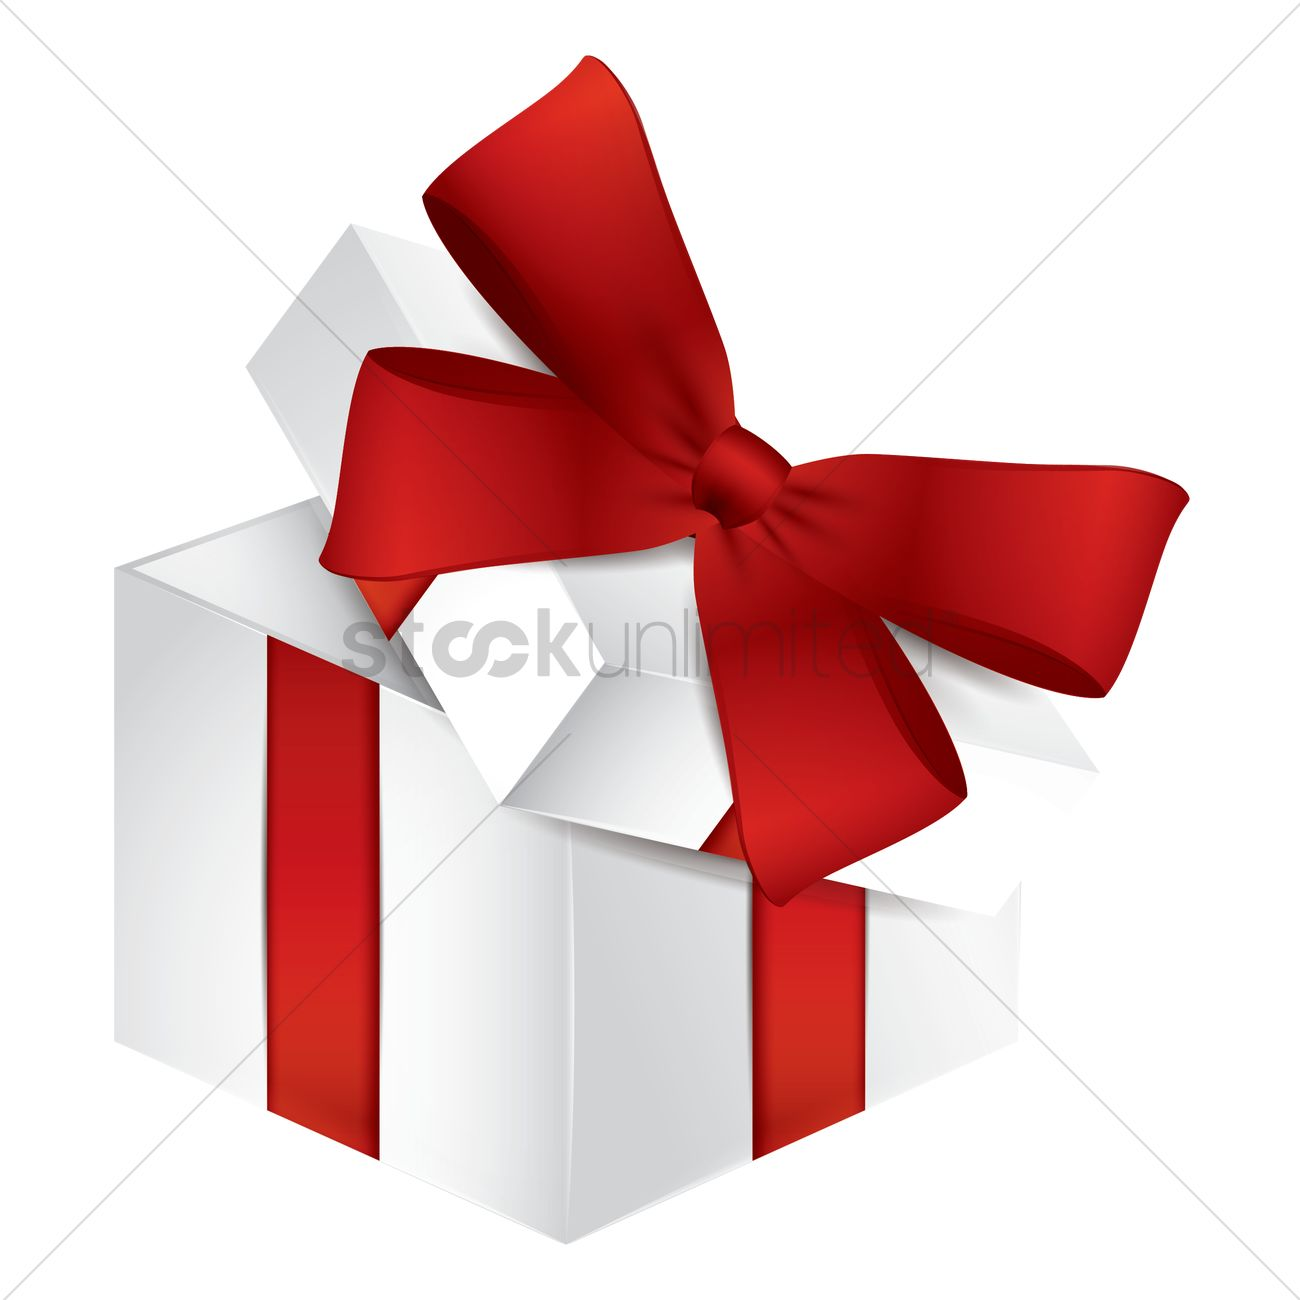 ef661191bdce0 Opened gift box with ribbon Vector Image - 1934409